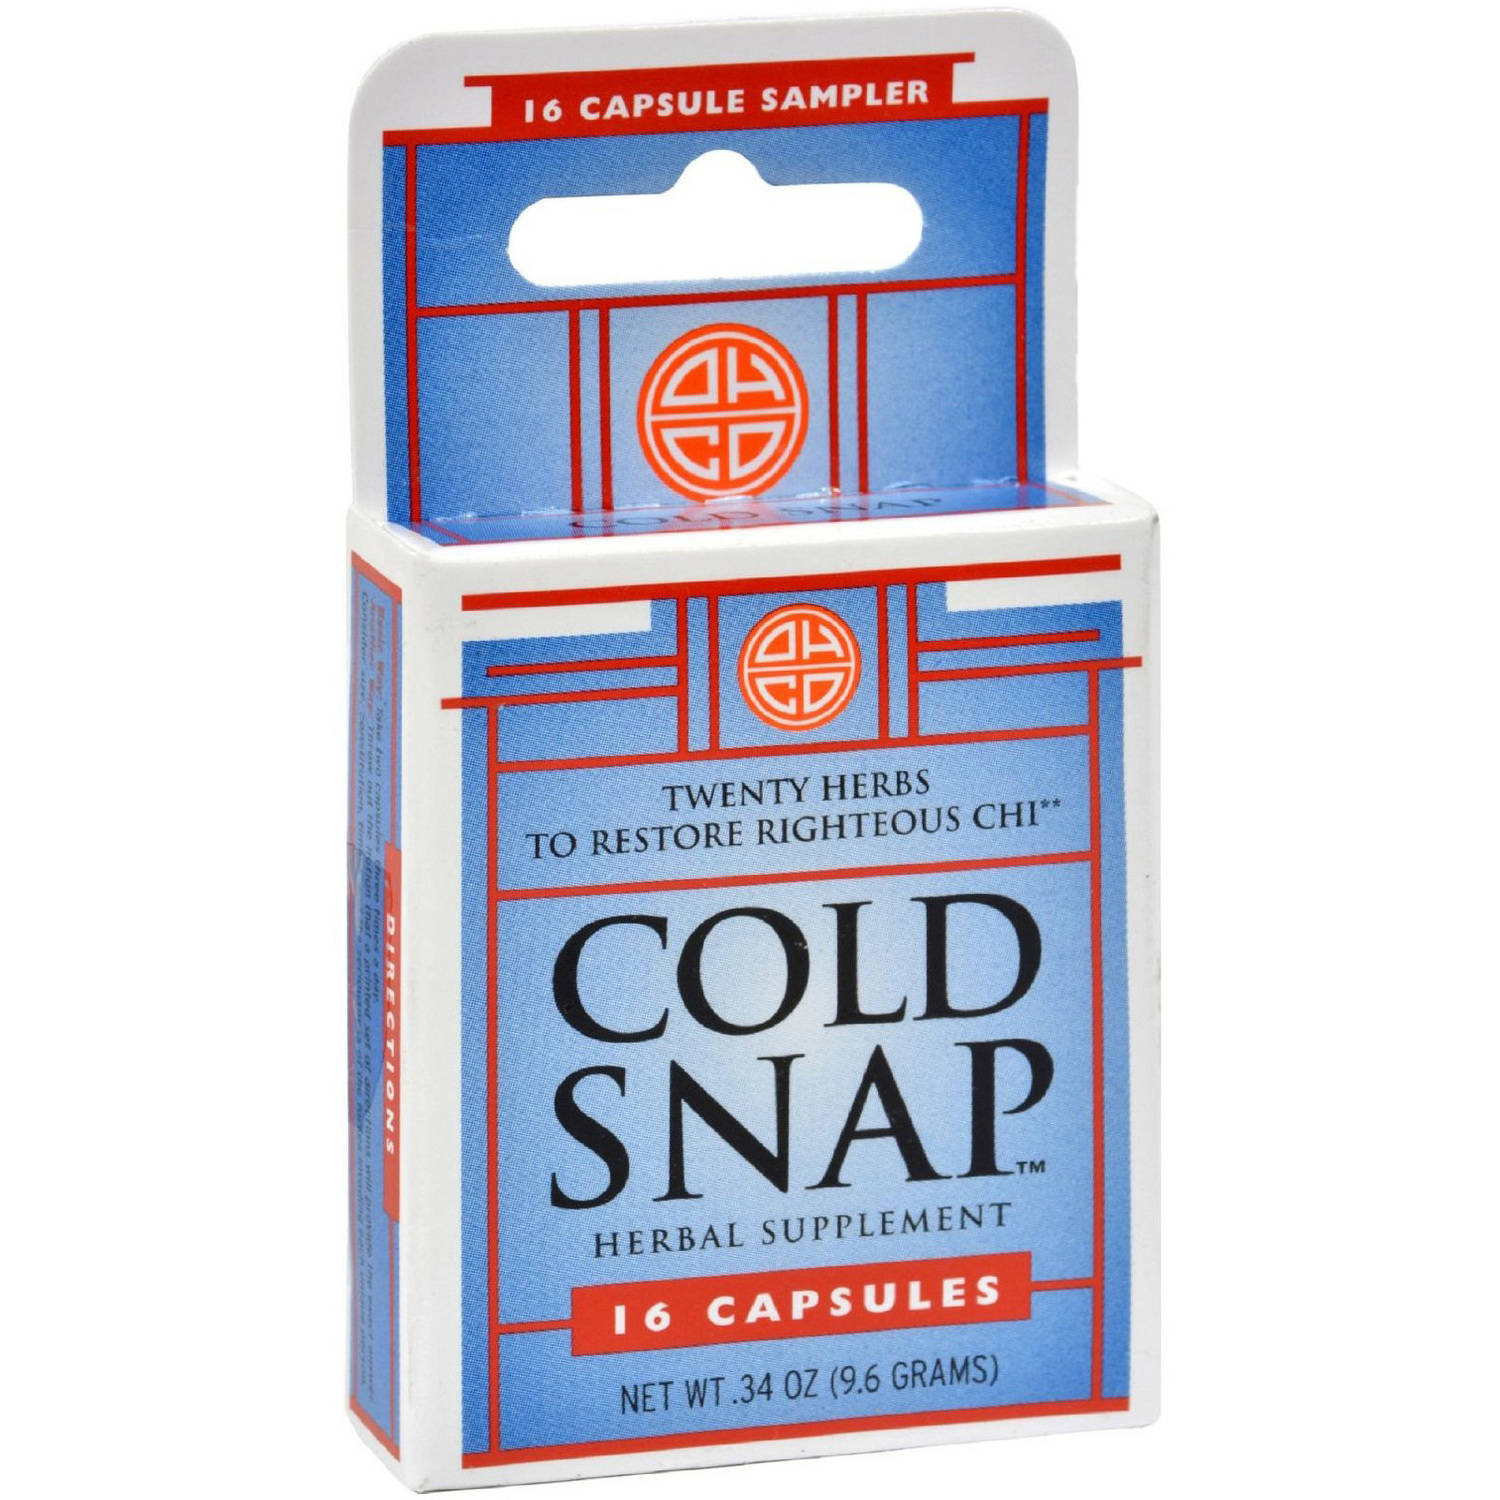 Ohco Cold Snap Capsules, 16 CT (Pack of 3)